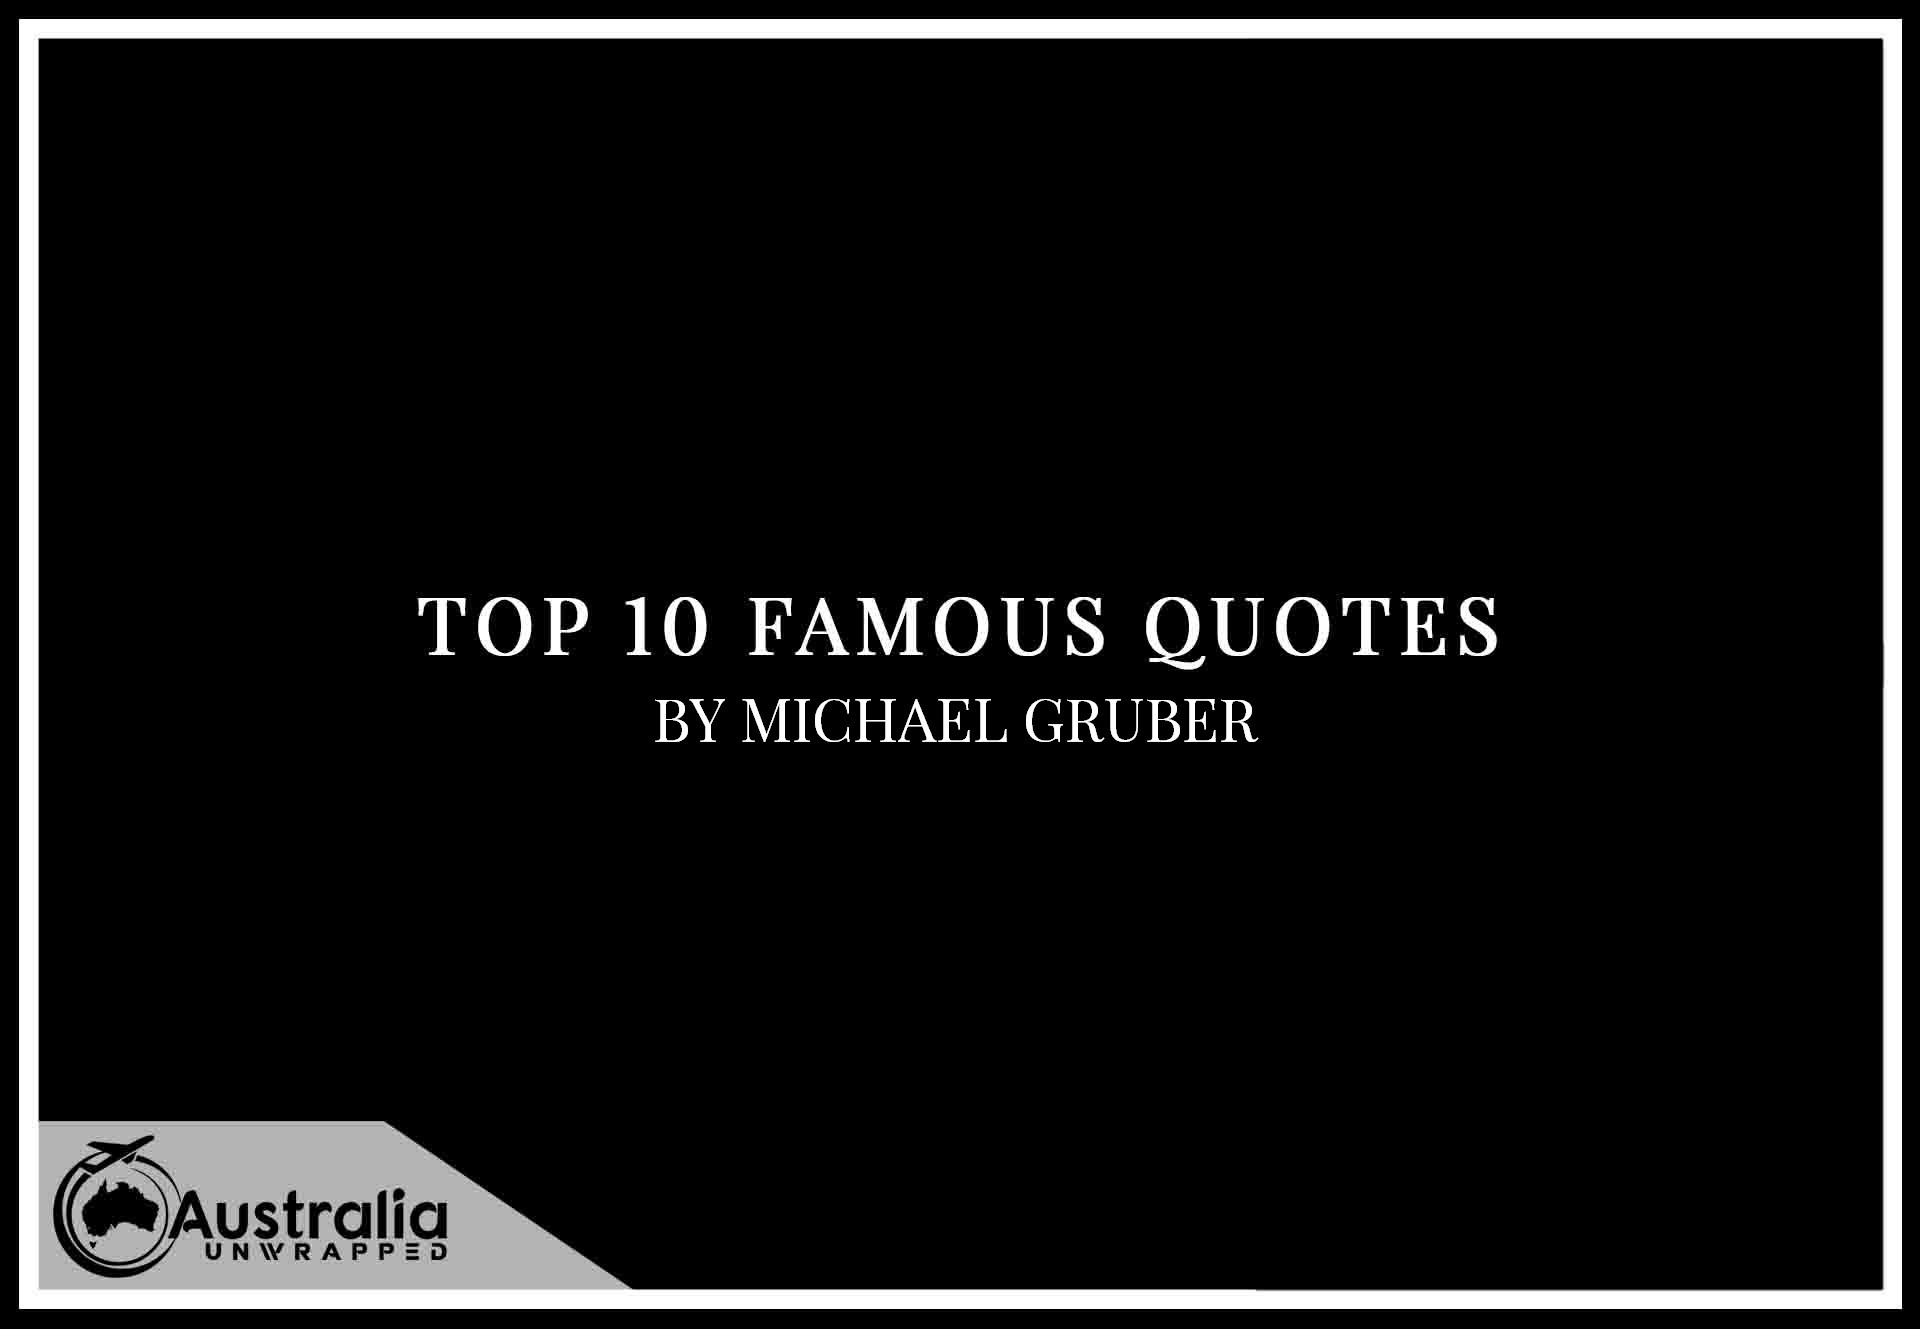 Top 10 Famous Quotes by Author Michael Gruber